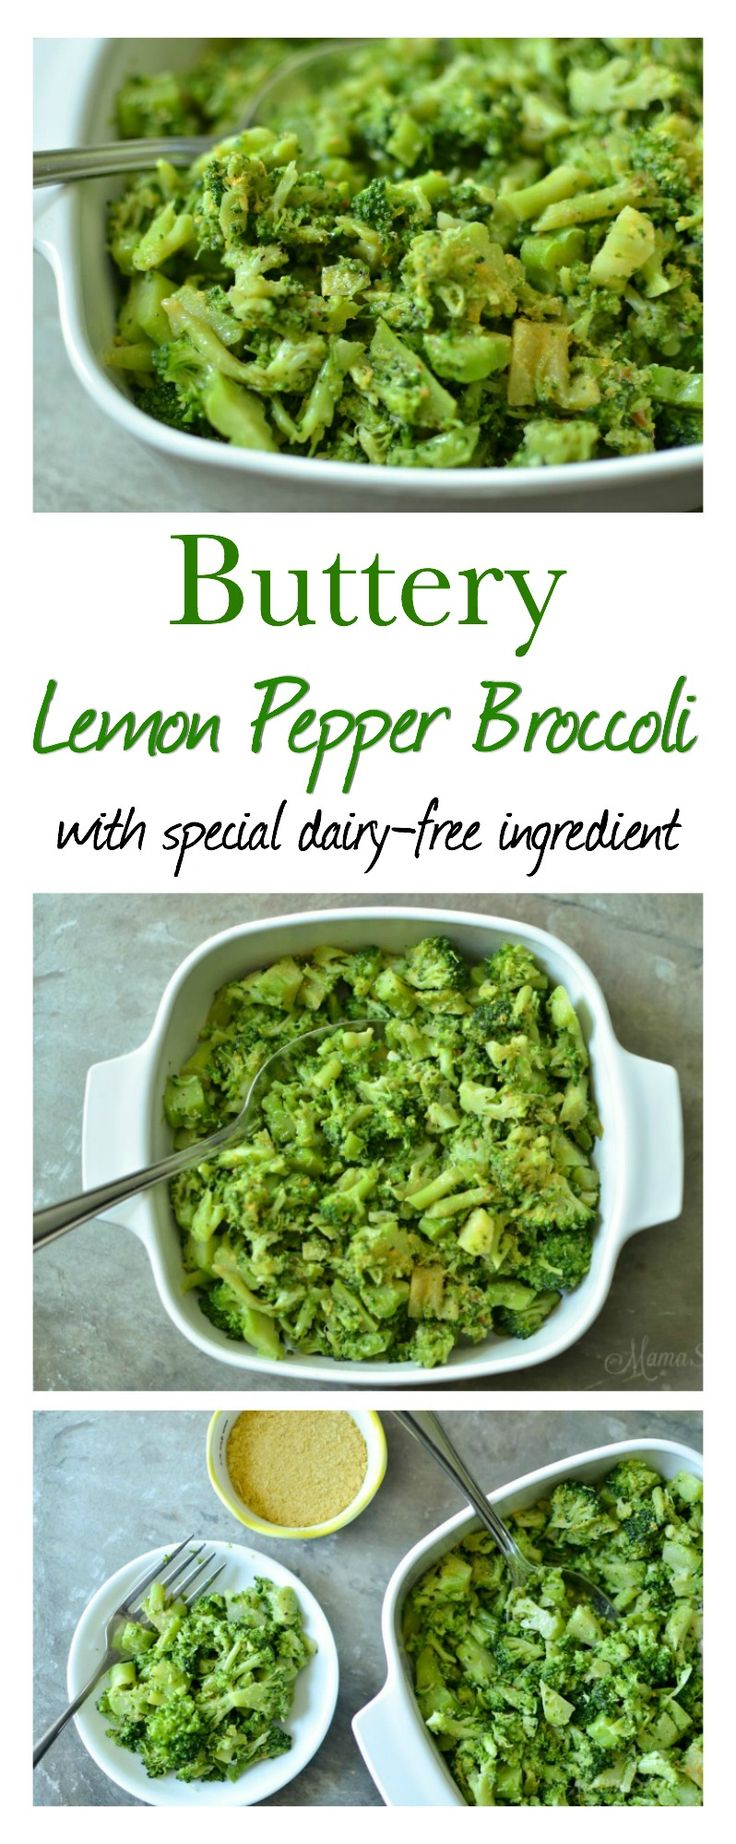 Buttery Lemon Pepper Broccoli made with special dairy-free ingredients. So delicious and easy to make. Get your veggies in! Trim Healthy Mama (S)